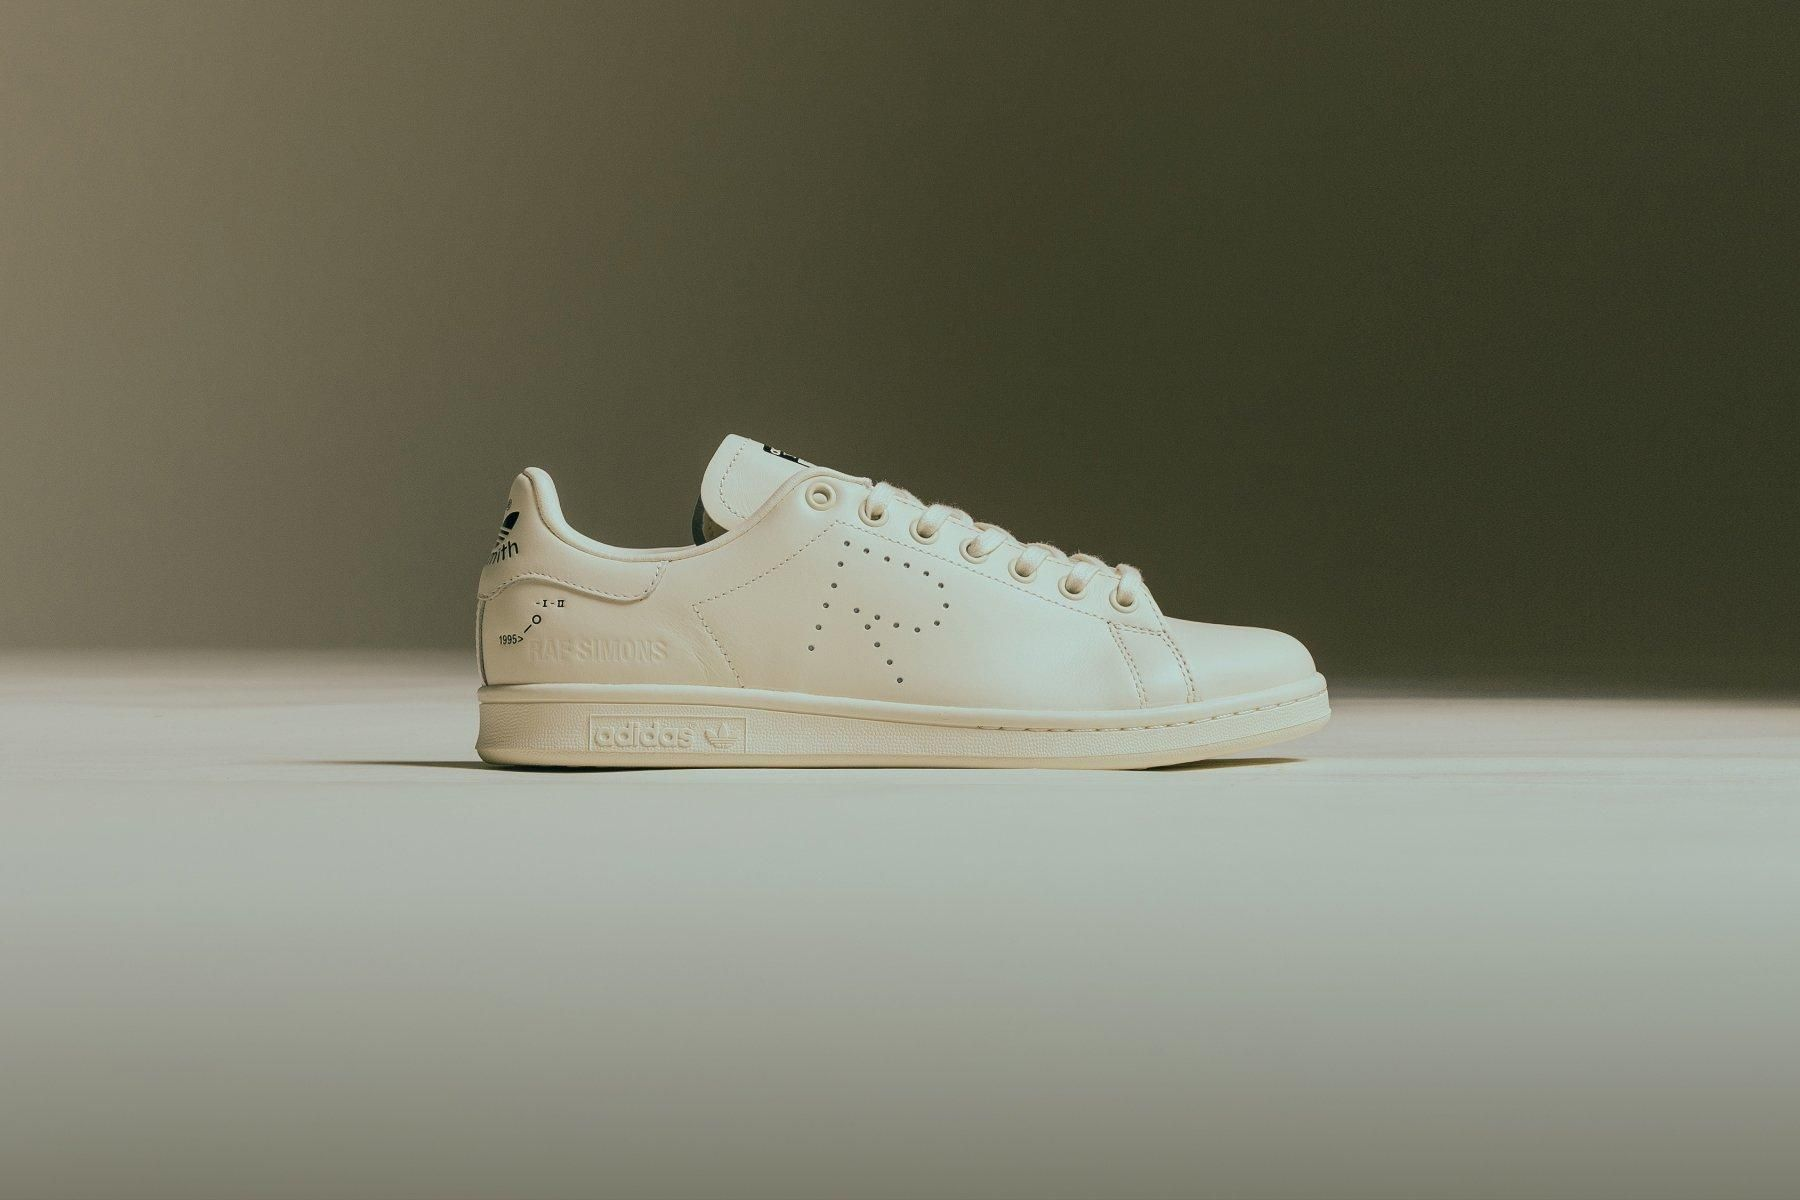 Adidas X Raf Simons Stan Smith  Core White Core Brown  F34256  Bold Yellow Flat White  F34259  Core White Core Black  F34264  Feature  September 18 2018 34